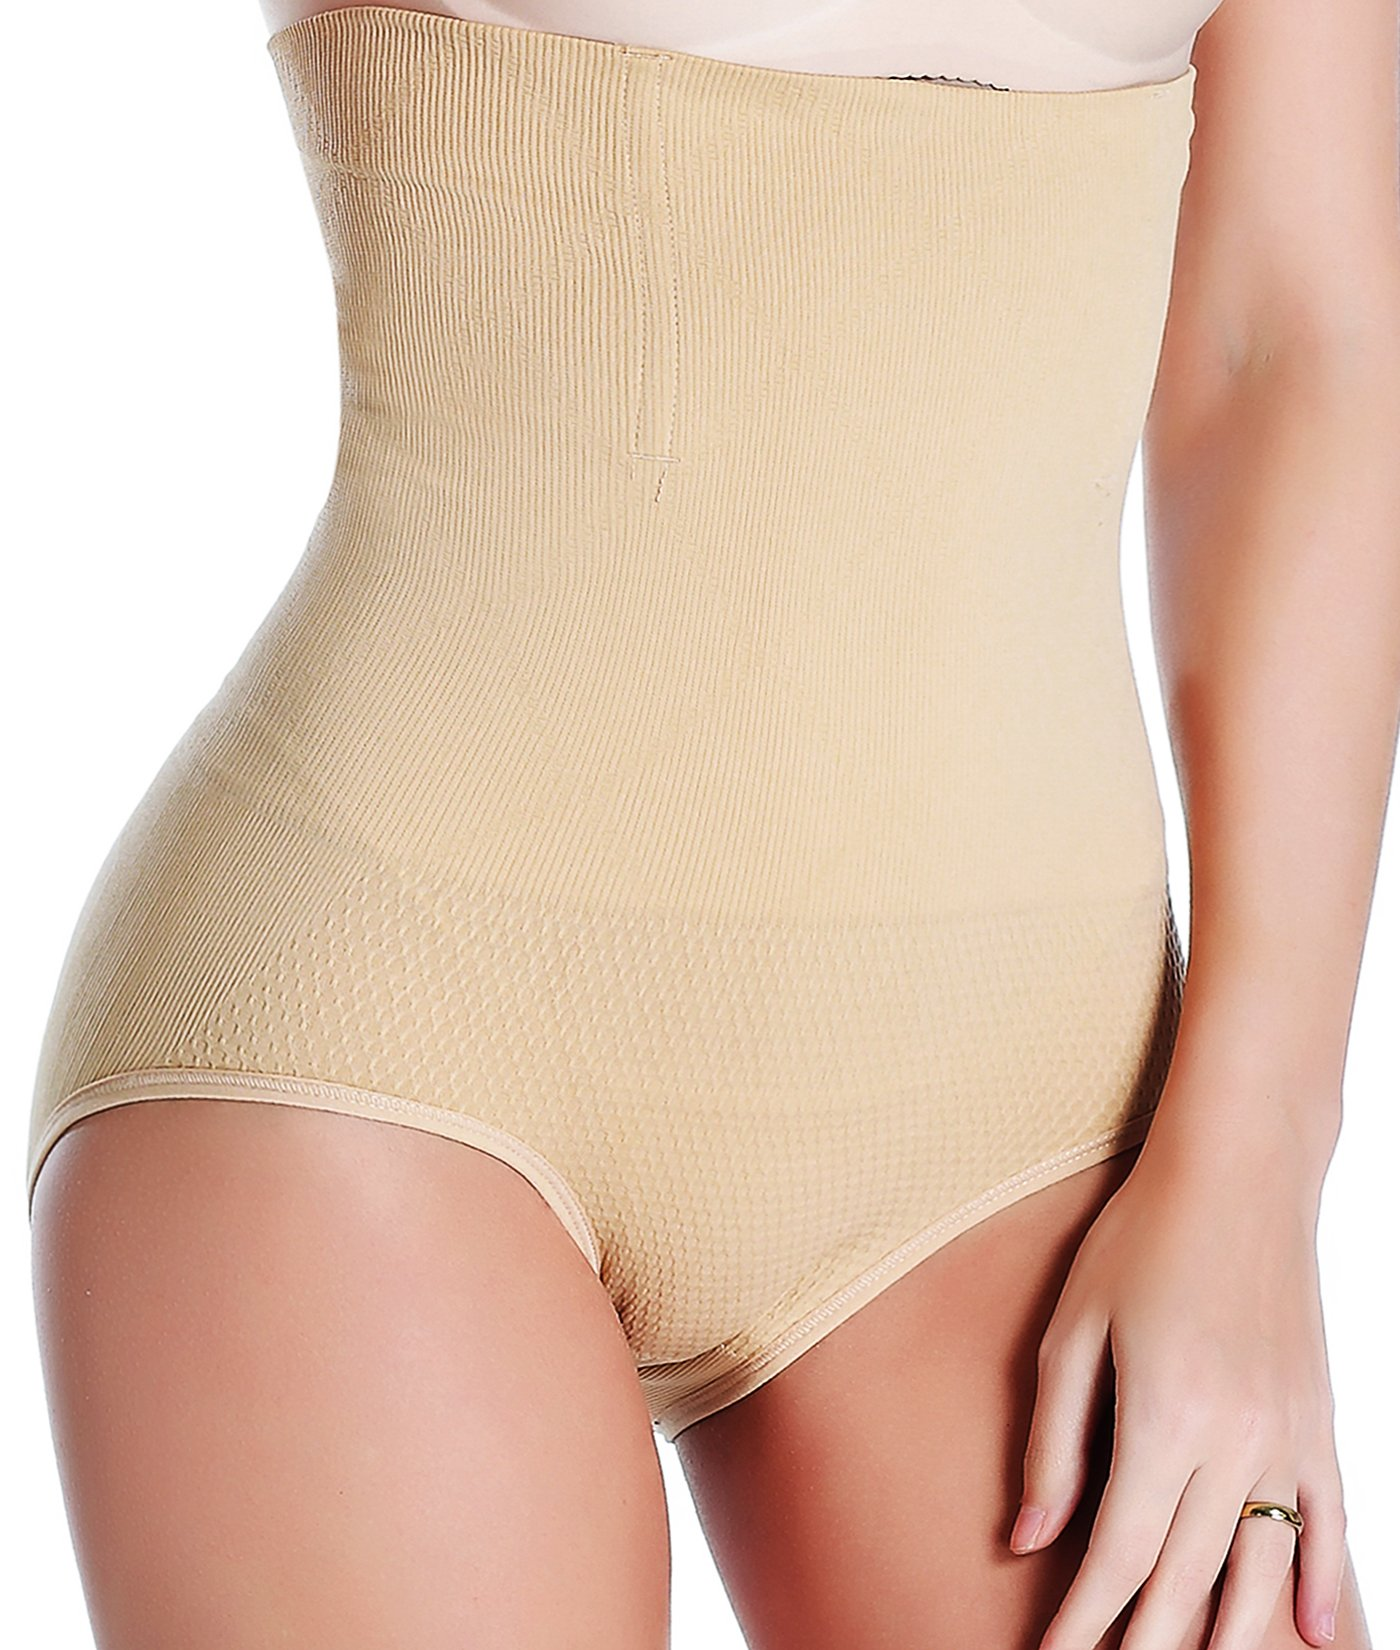 Trainer Control Shapewear Slimming Seamless